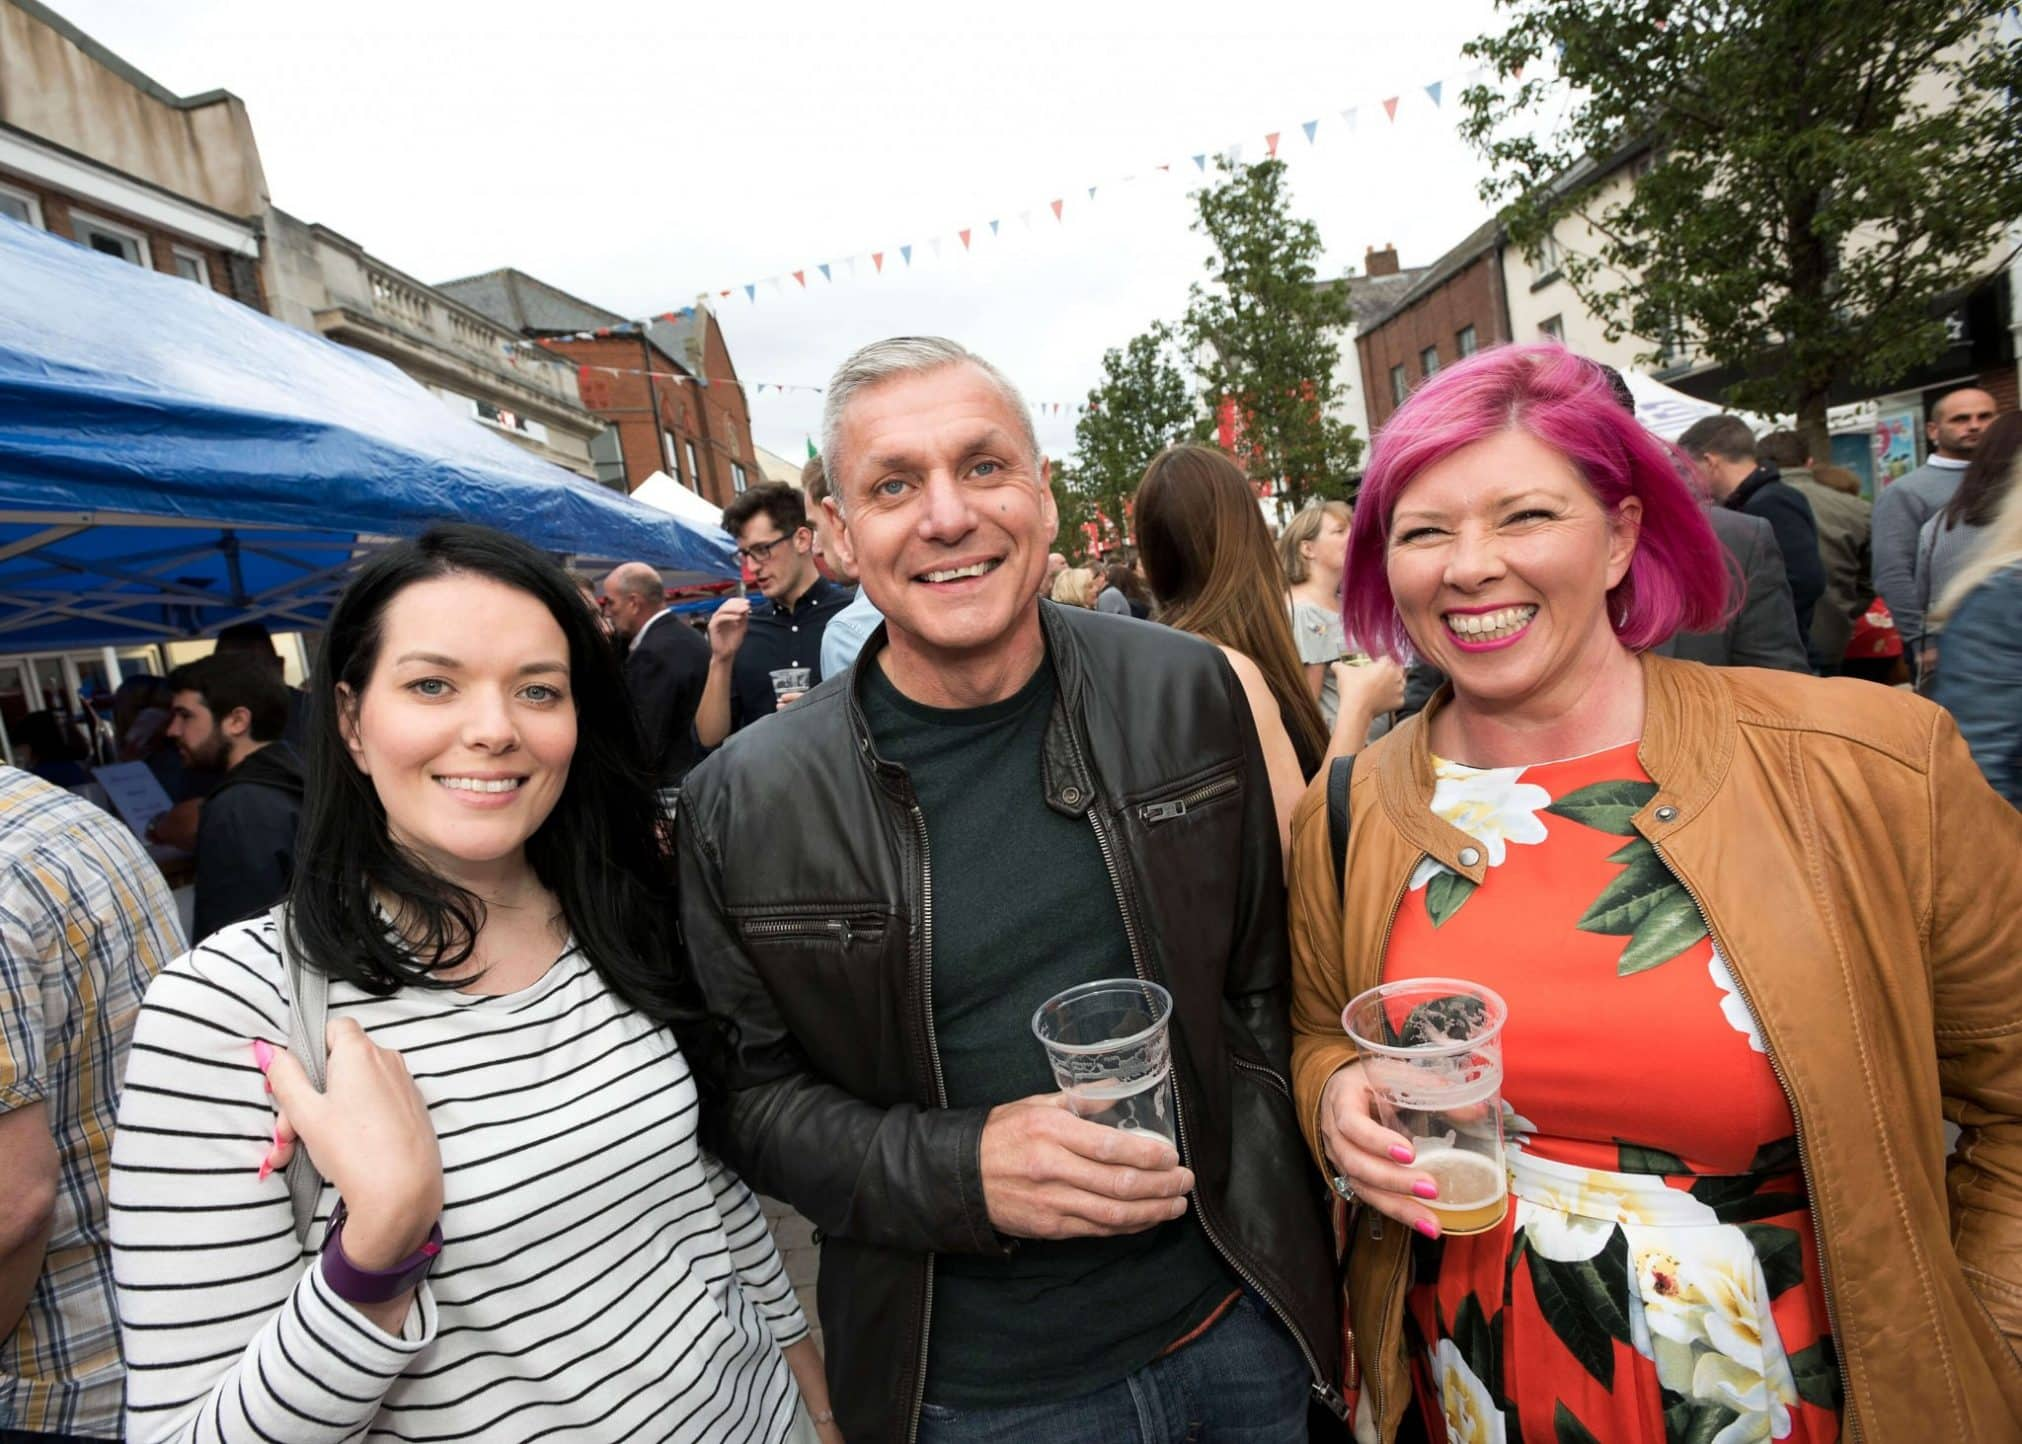 Louise, Carl and Donna visit Moor St Night Market